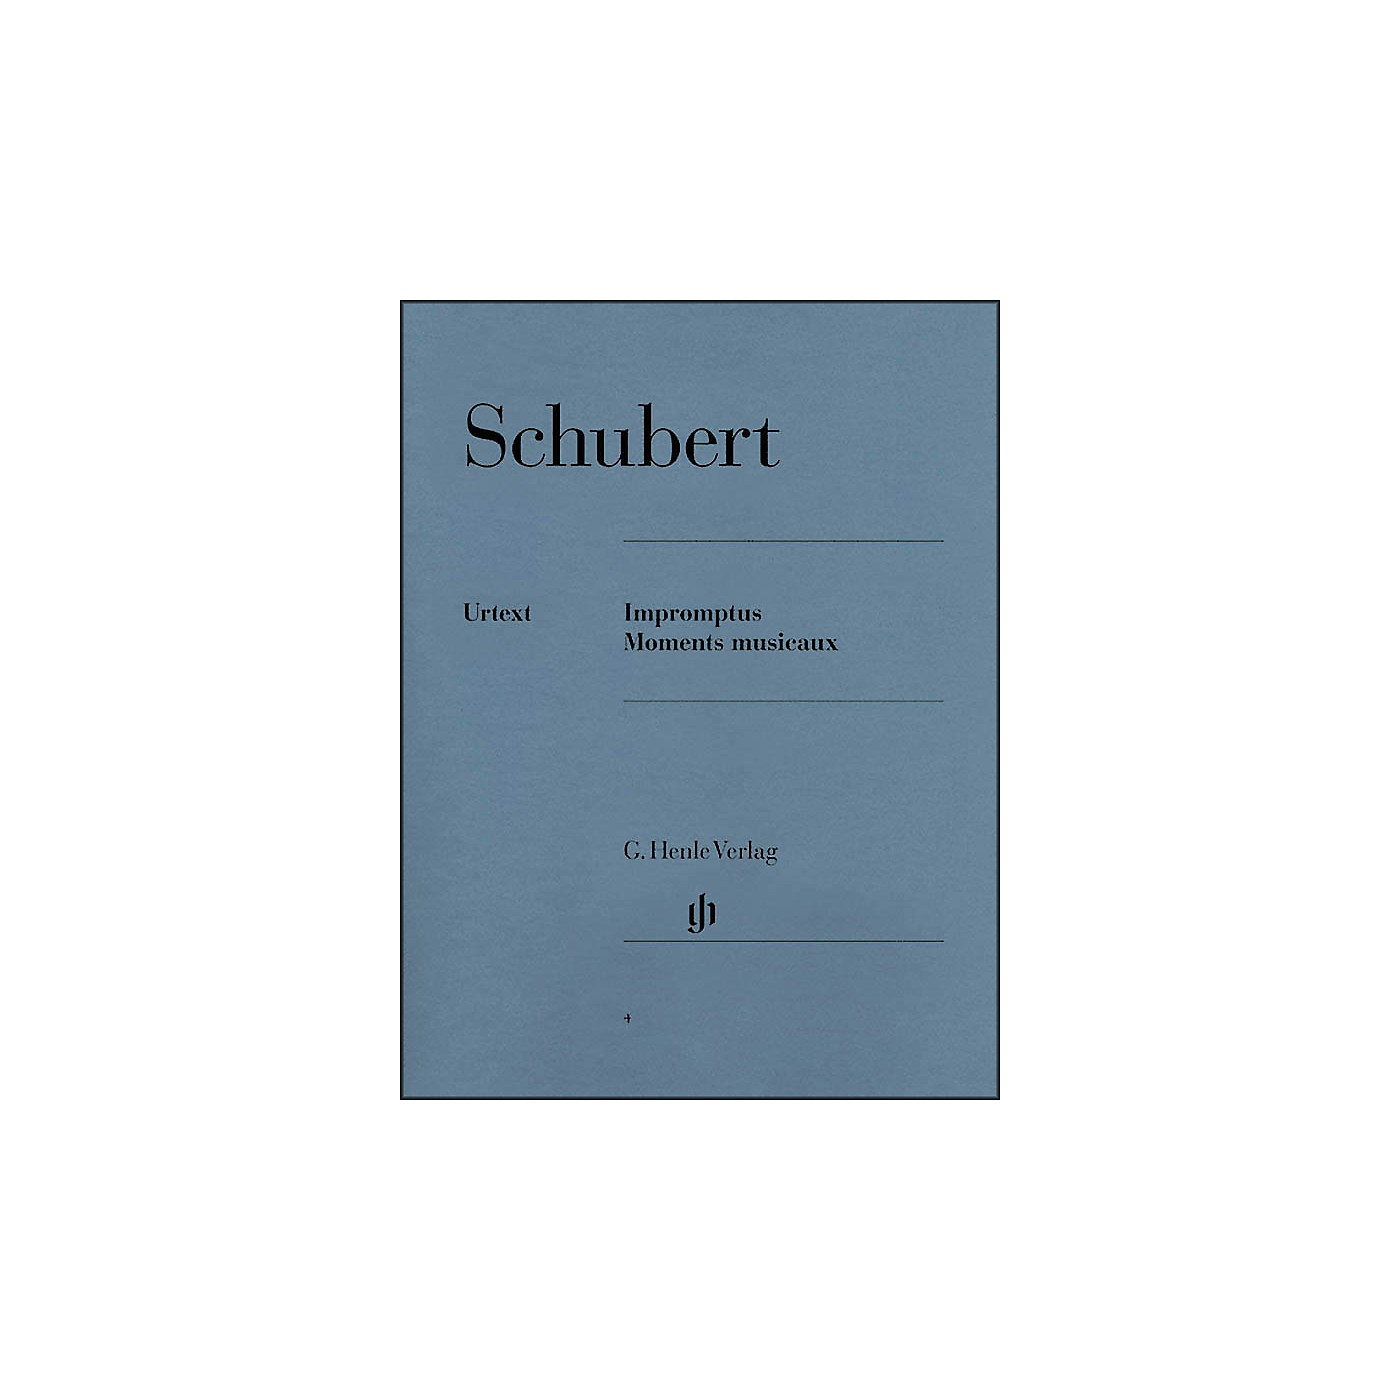 G. Henle Verlag Impromptus And Moments Musicaux By Schubert thumbnail